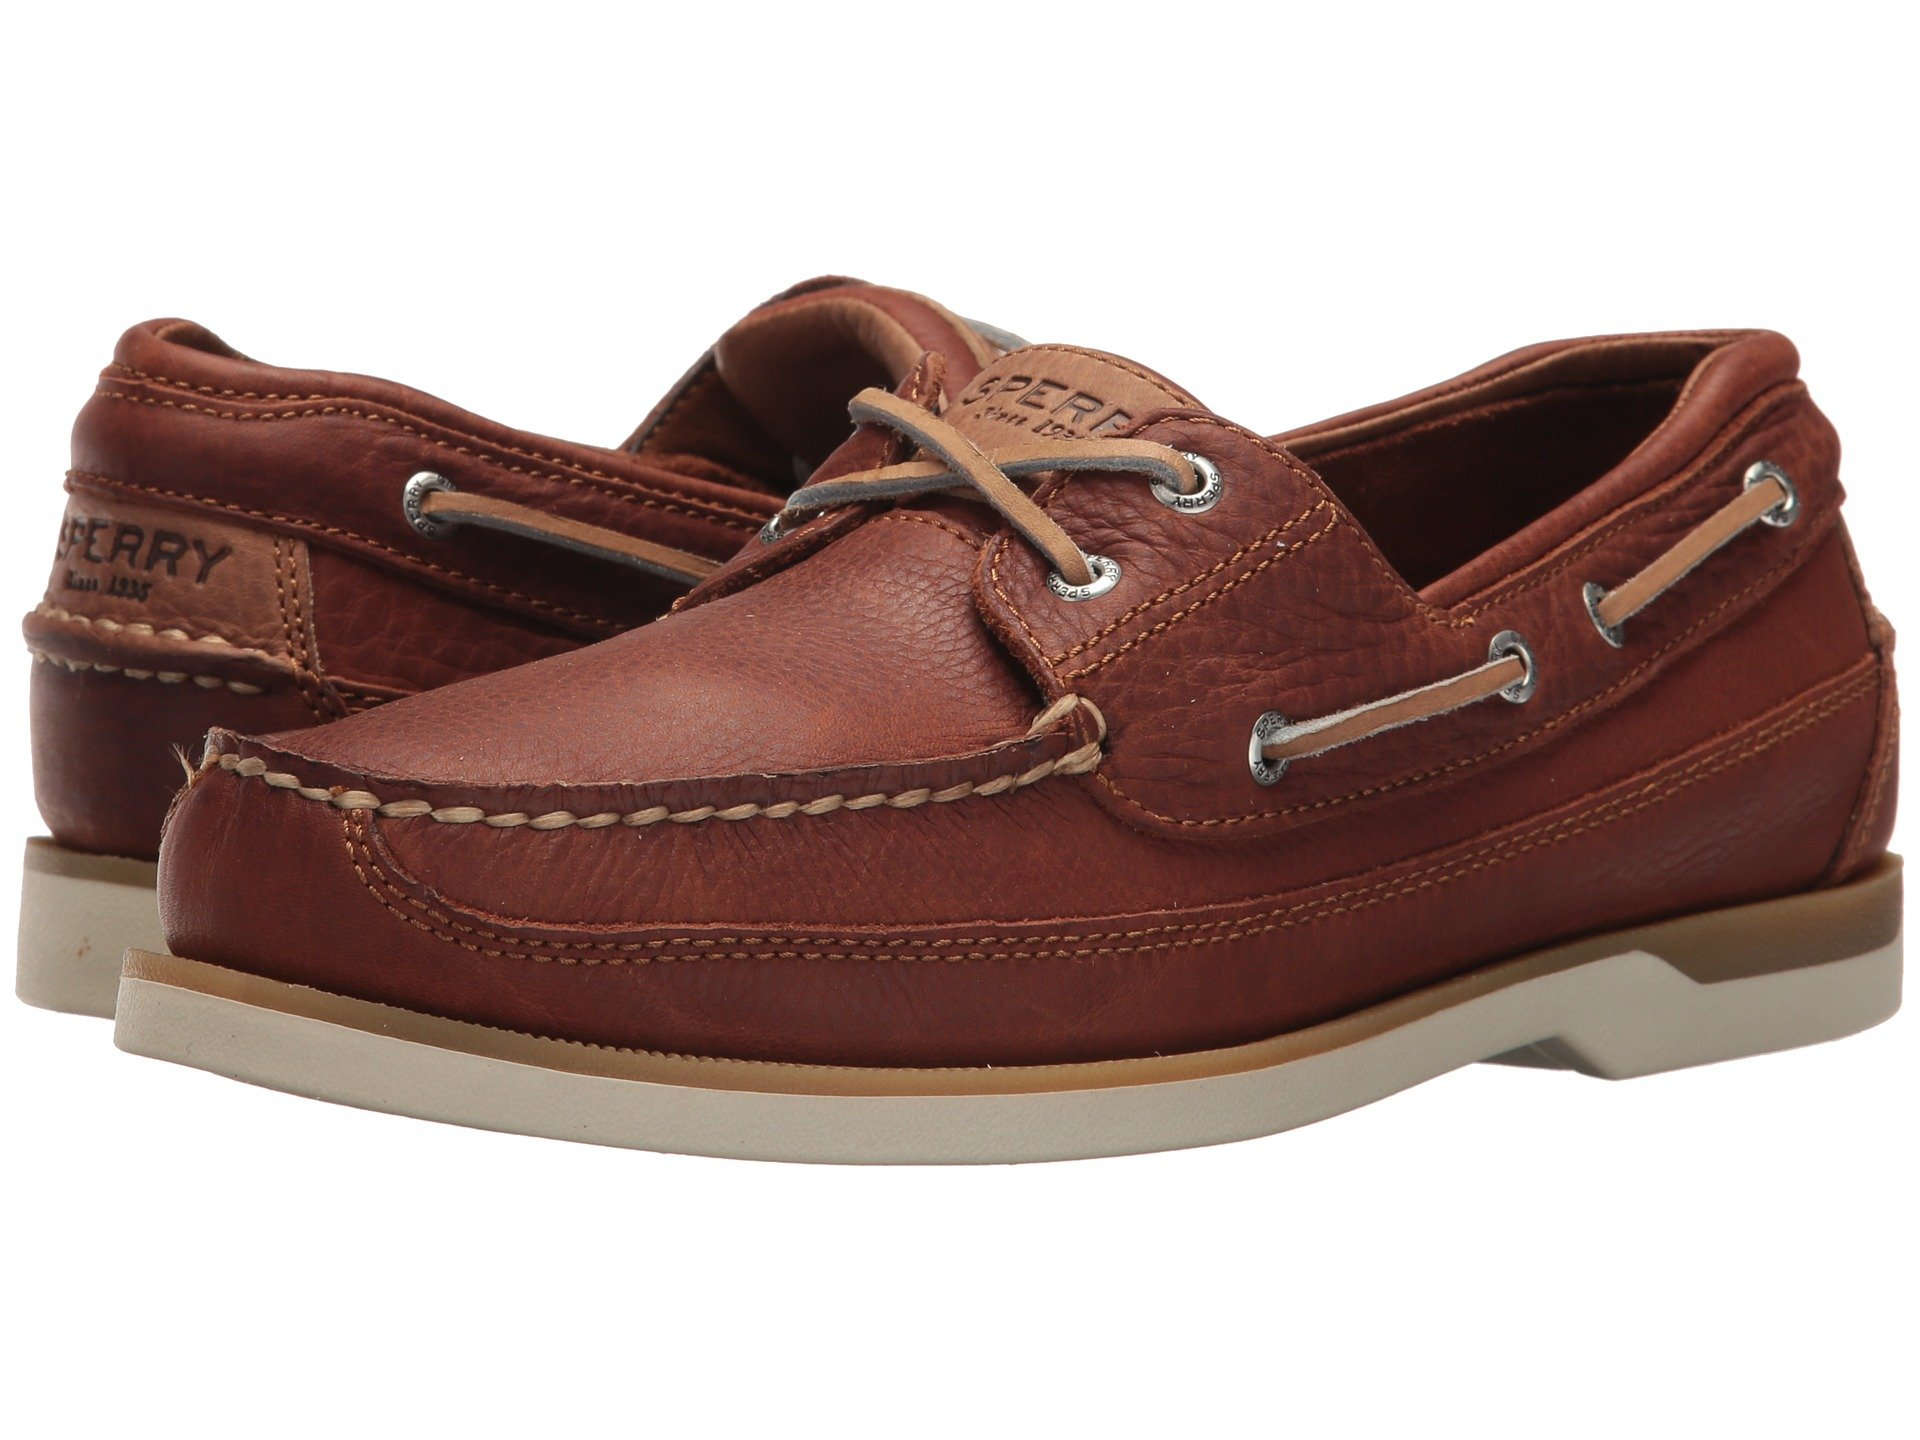 721d6f077fbb Men s Sperry Shoes + FREE SHIPPING